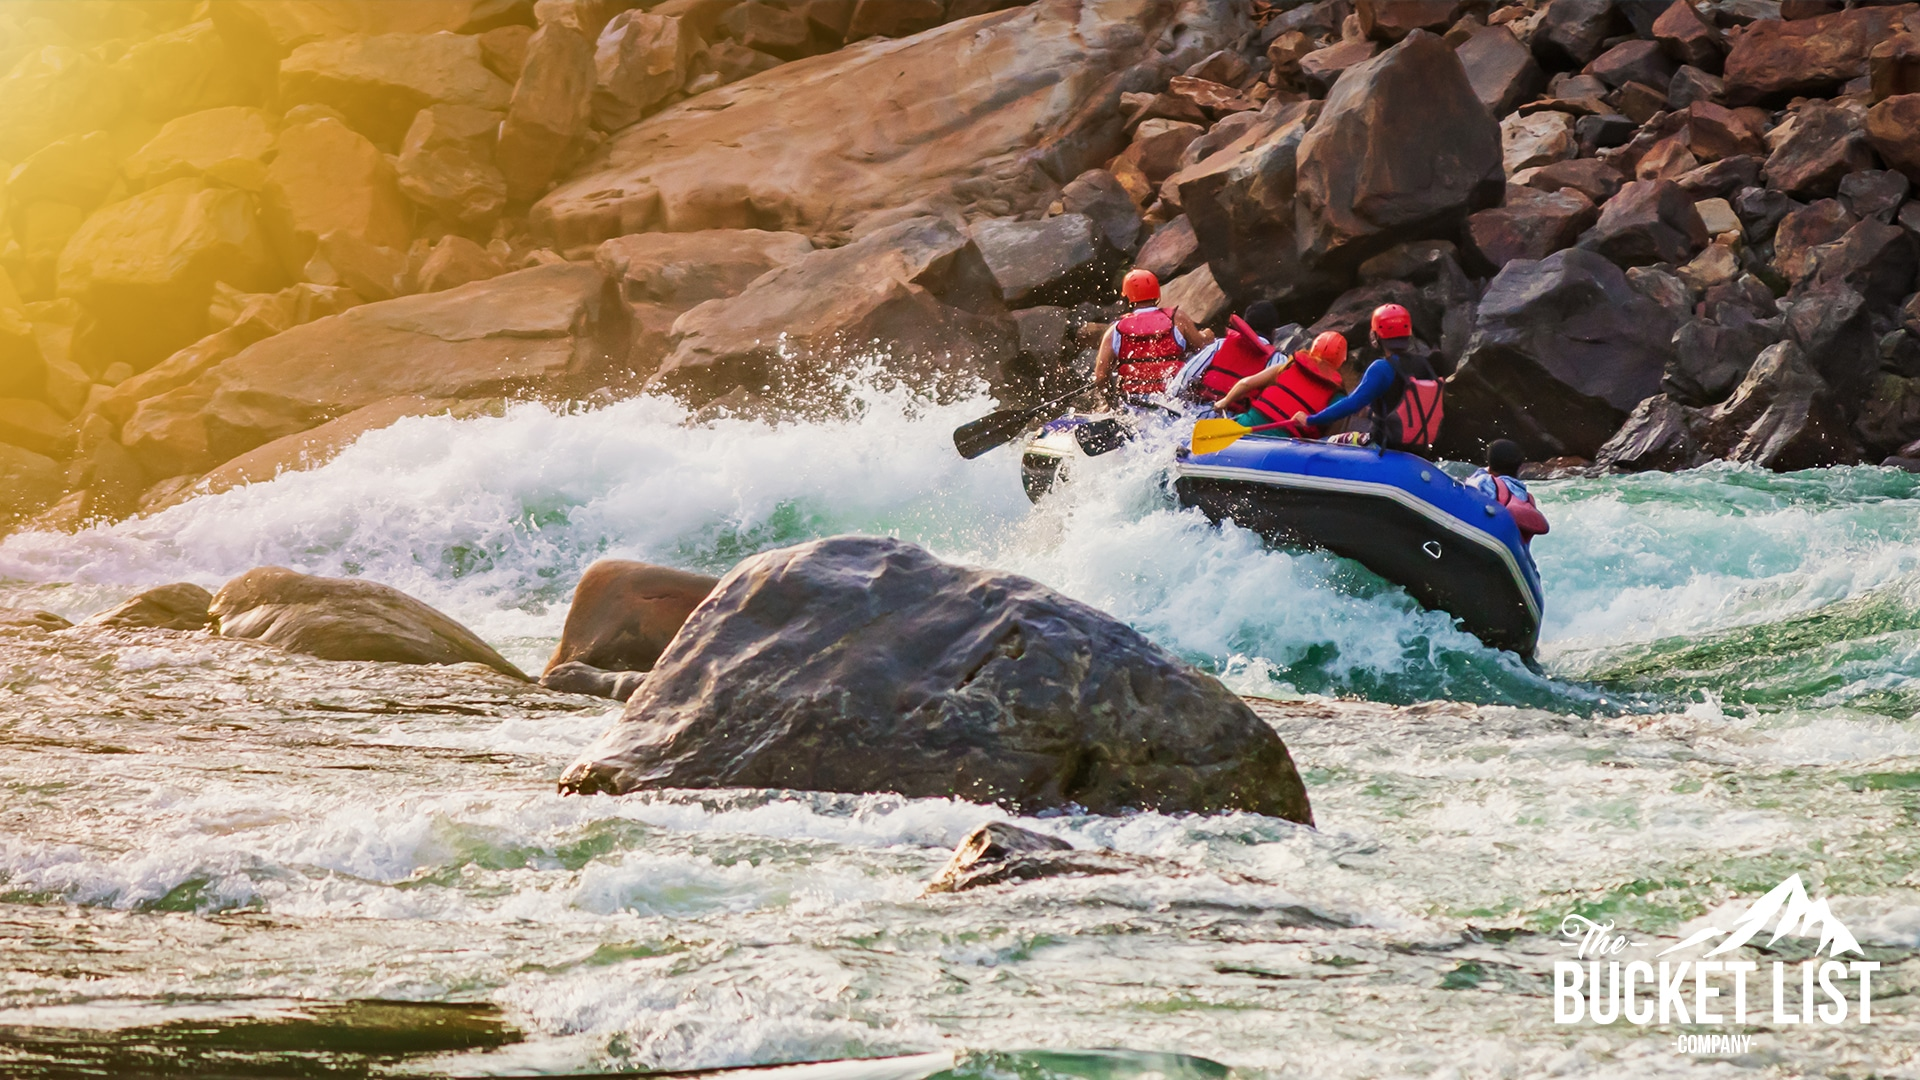 a group of adventurers on a raft in the rapids of Morocco